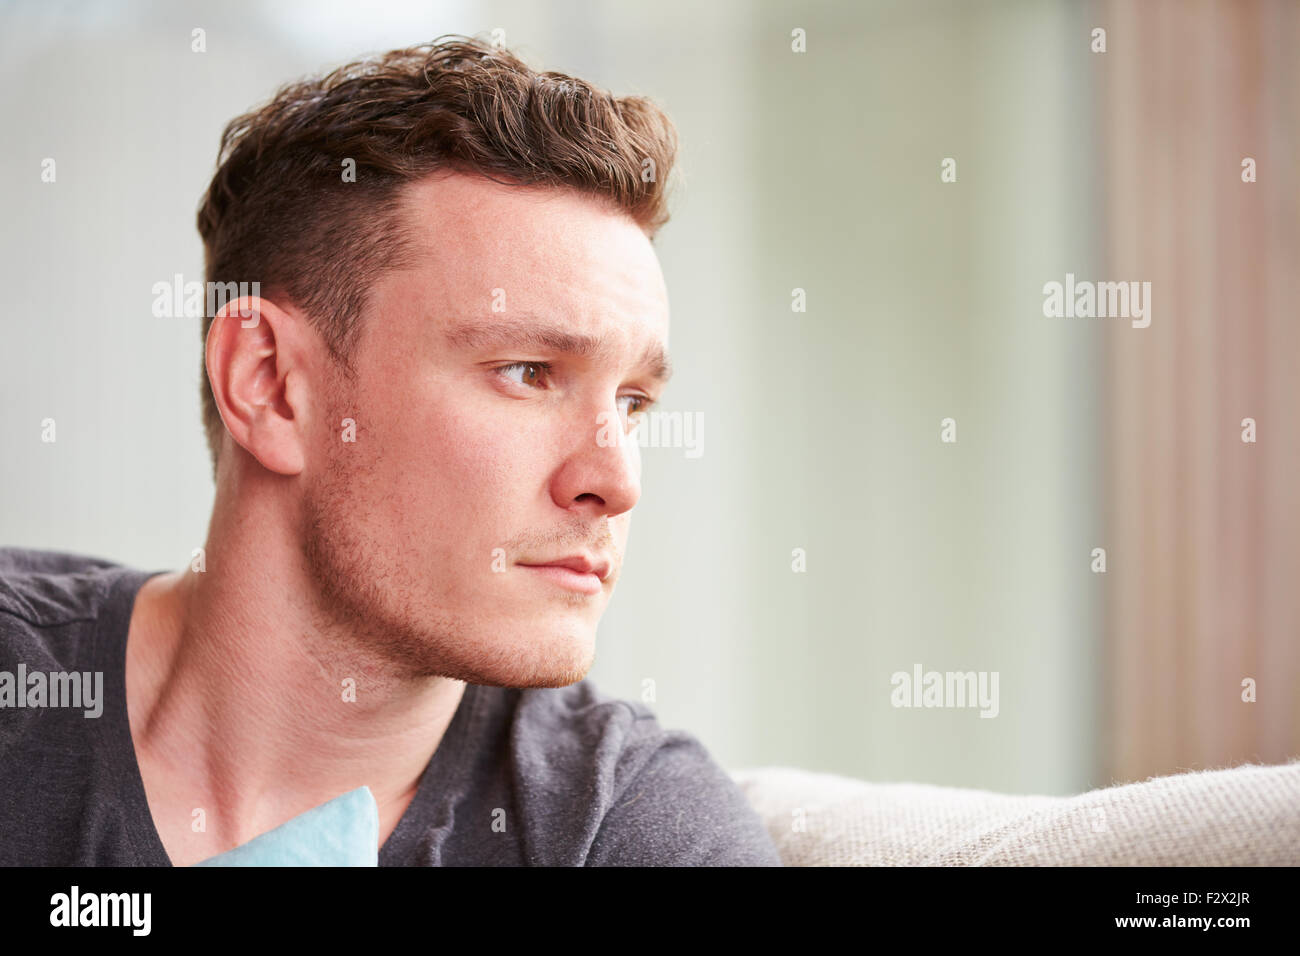 Young Man Suffering From Depression At Home - Stock Image